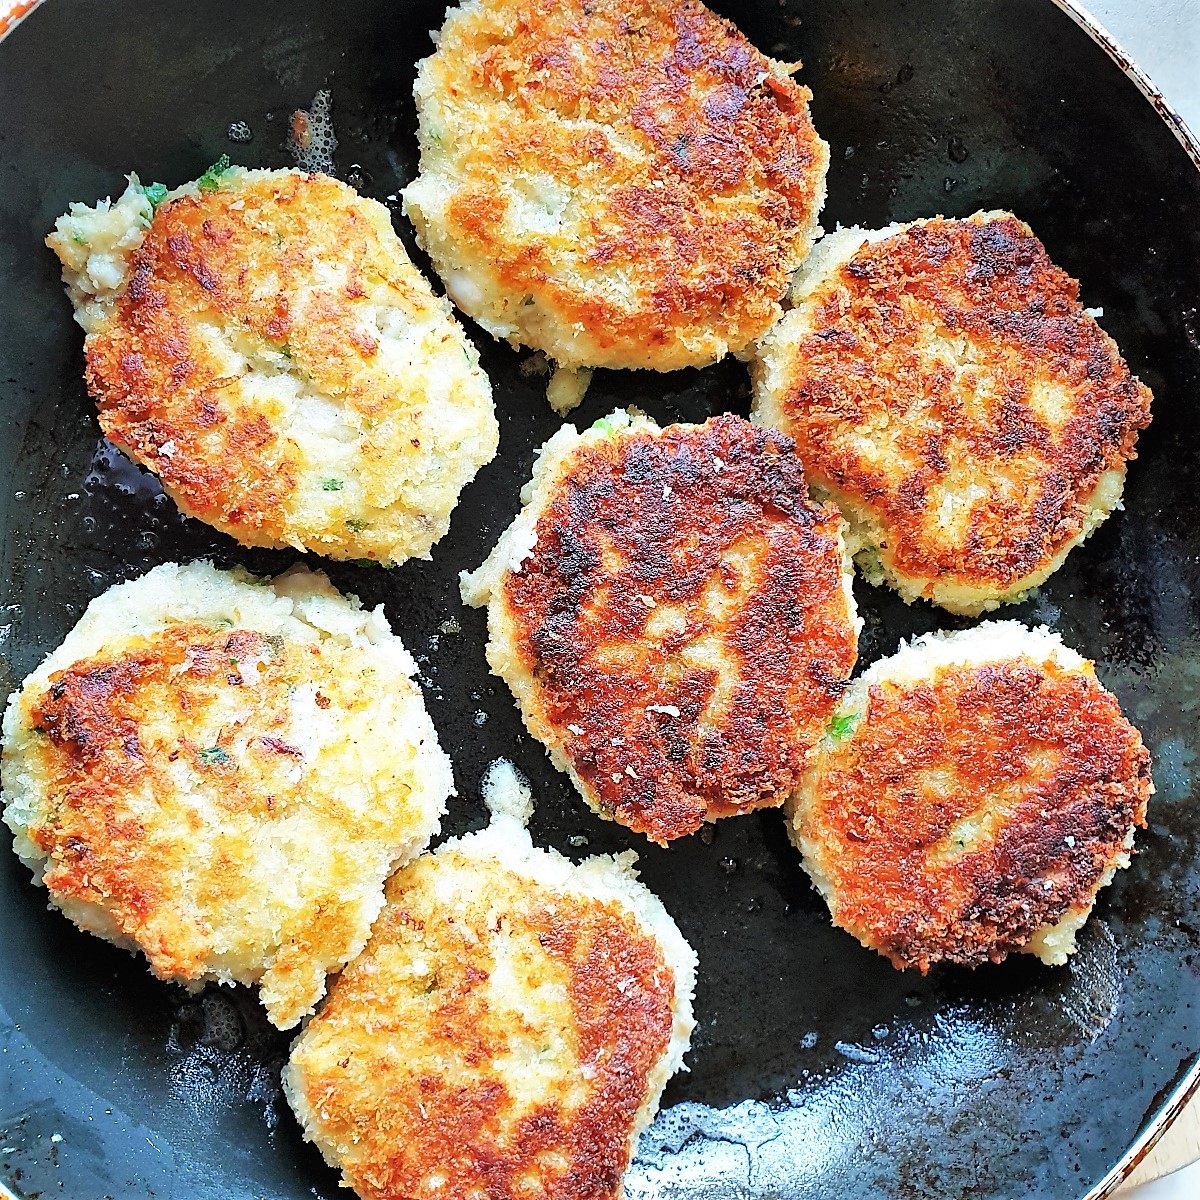 Fishcakes being browned in a frying pan